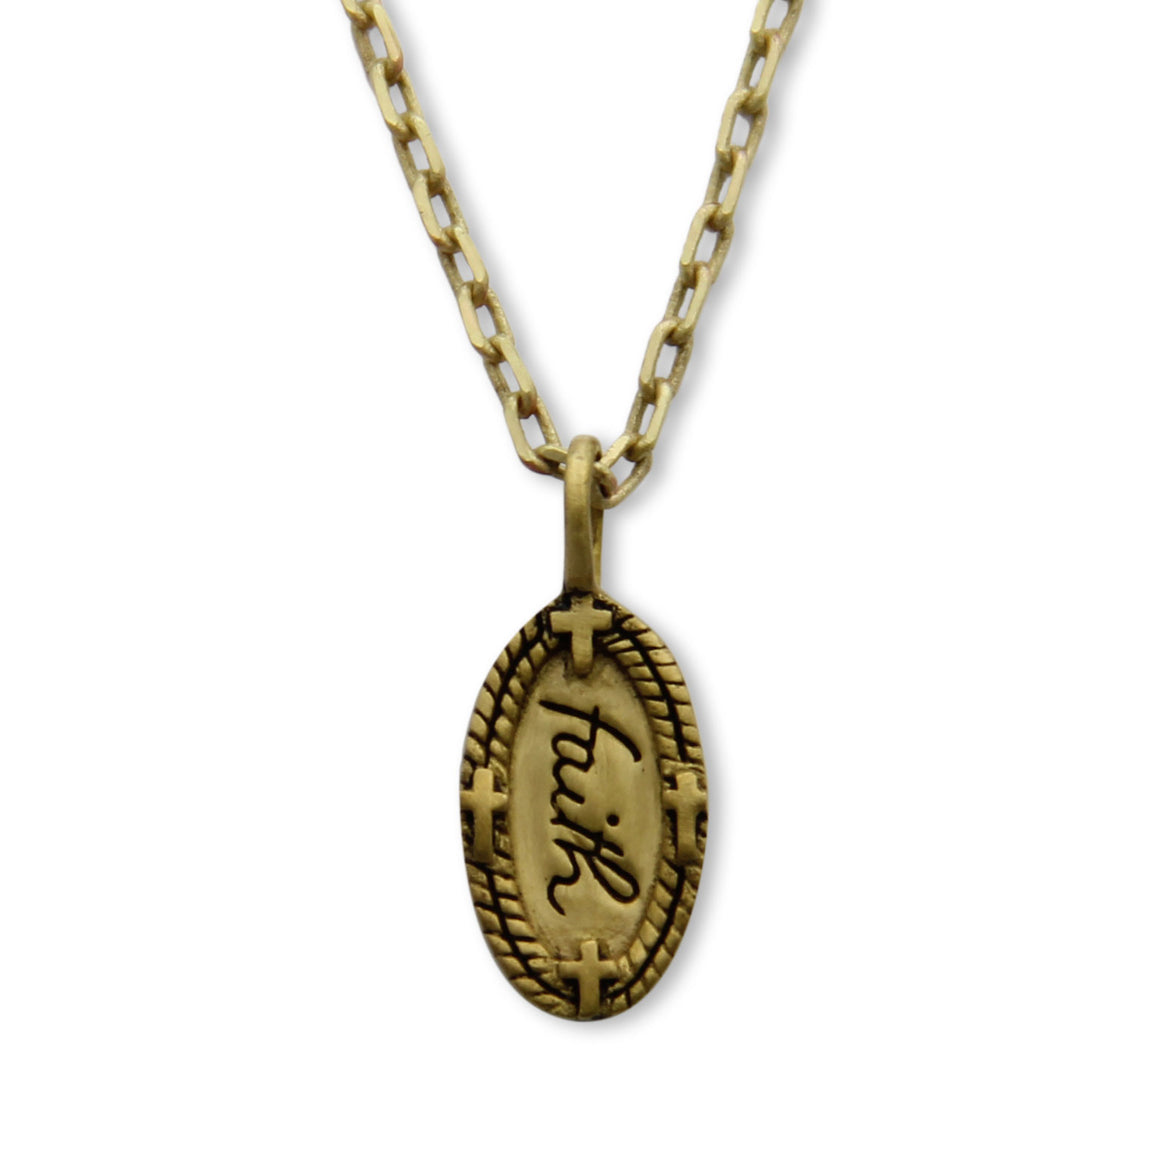 Gold Faith Charm Necklace, Inspirational Message Jewelry, Tiny LifeNotes®